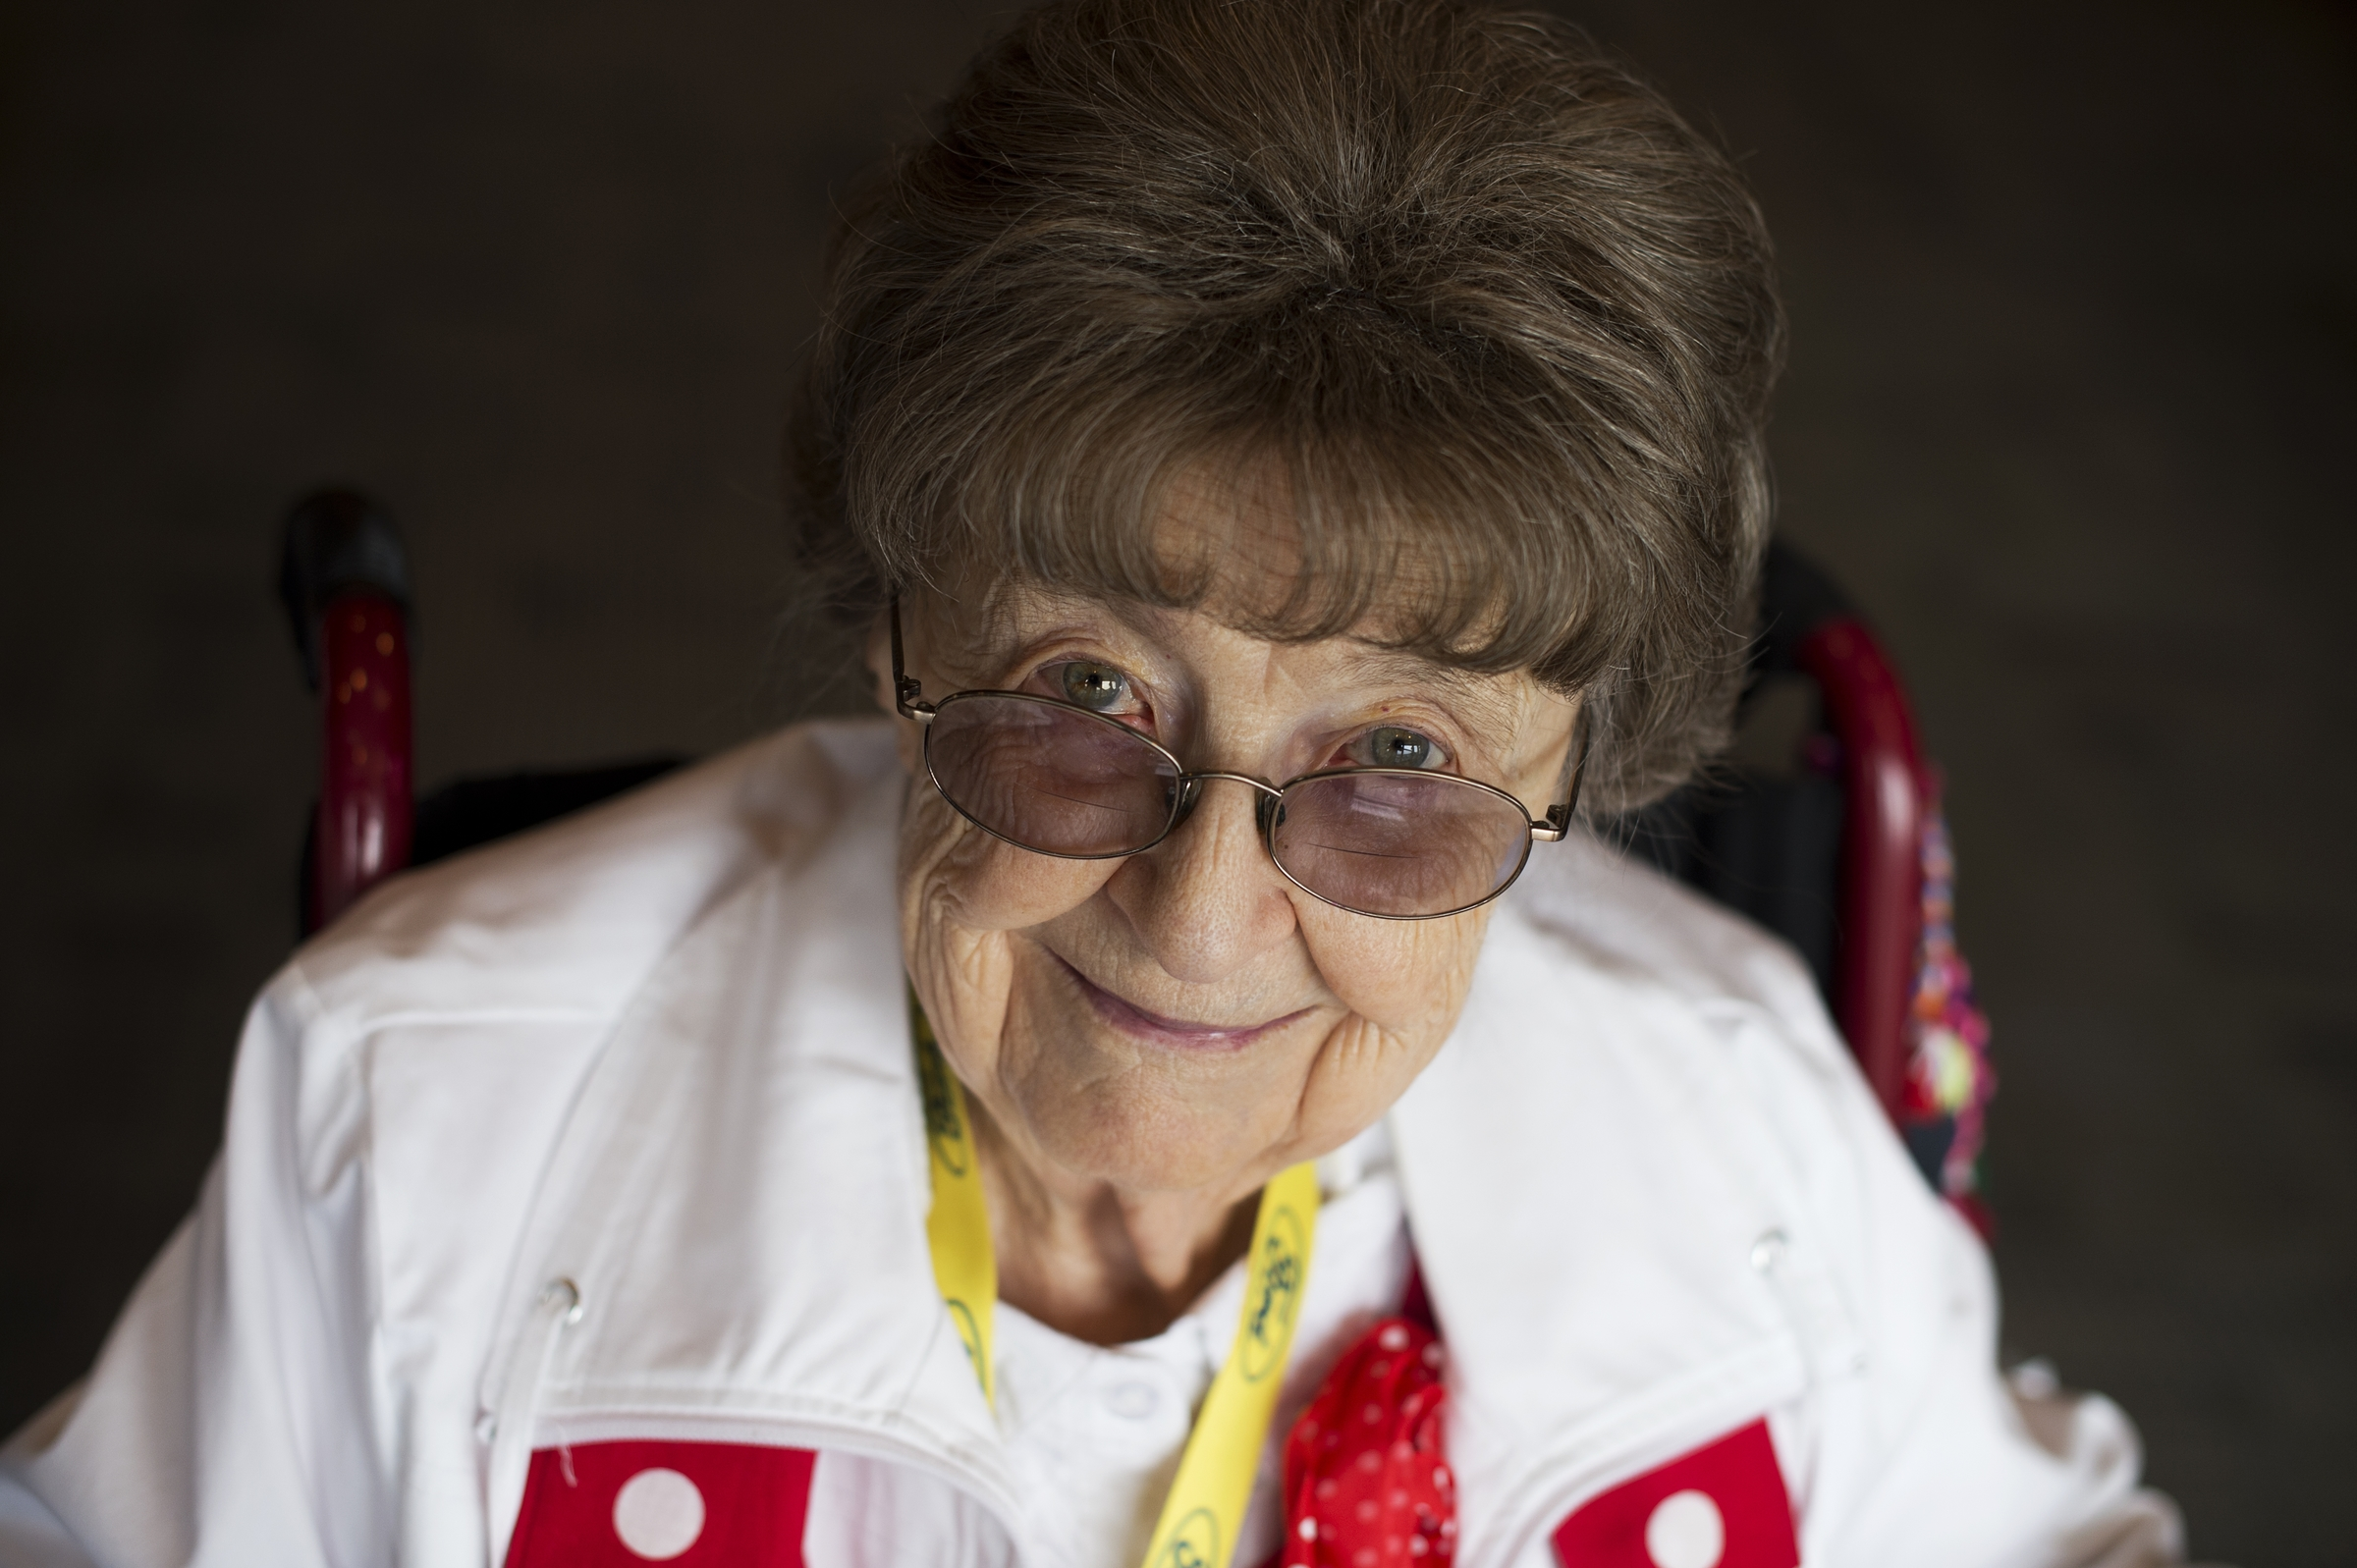 UNITED STATES - MARCH 22: Frances Reeck, a World War II era Rosie the Riveter, is photographed during a lunch for a group of about 30 Rosies at the Library of Congress, March 22, 2016. They were part of an Honor Flight from Detroit who were on a tour of D.C. that included stops on Capitol Hill, the World War II Memorial, and Arlington National Cemetery. (Photo By Tom Williams/CQ Roll Call)